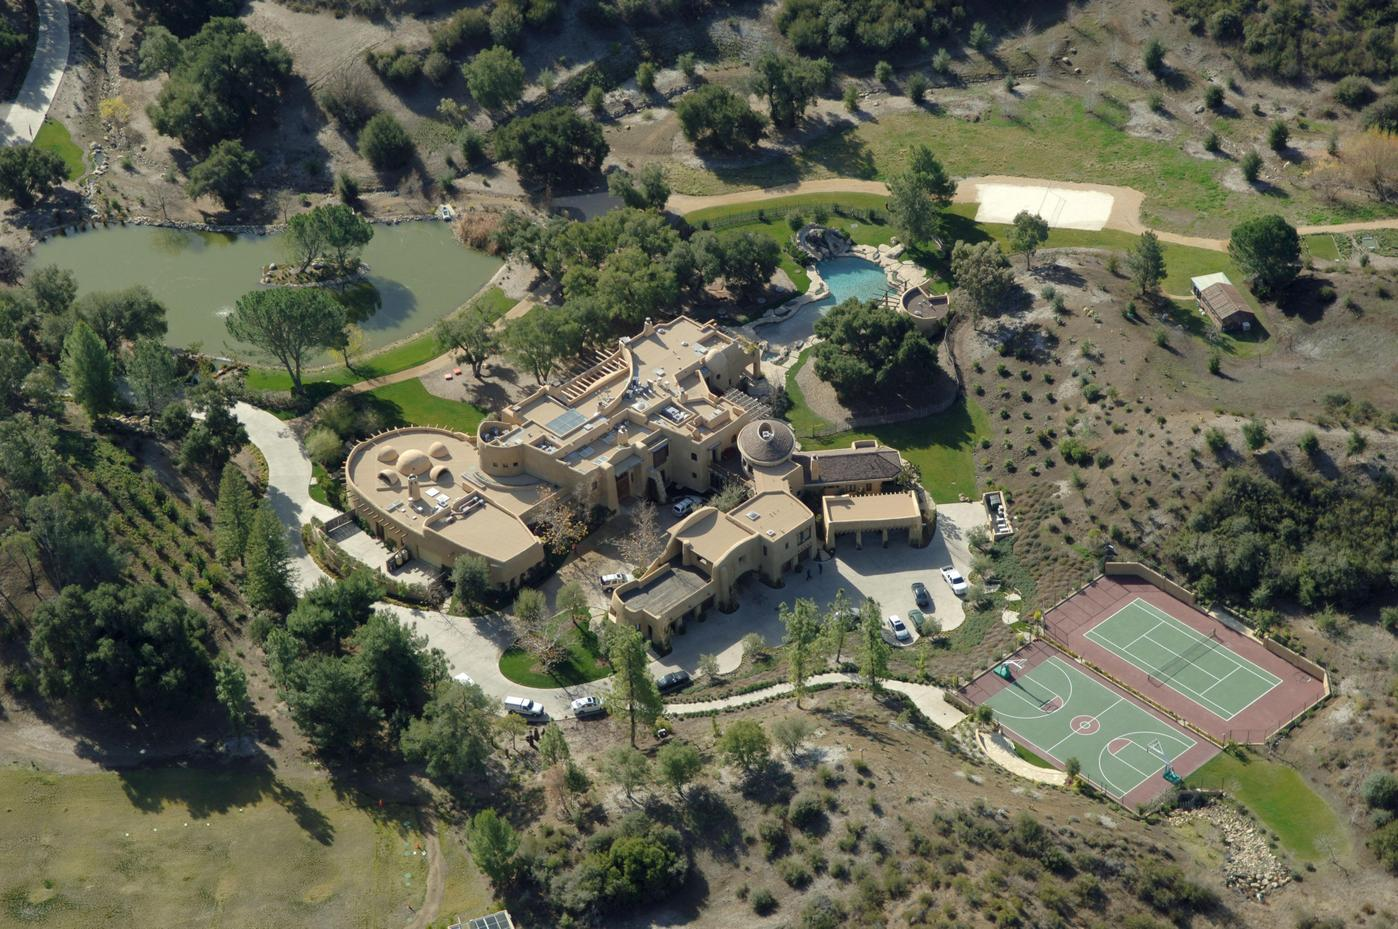 A look inside the homes of the rich and famous 39 info for Inside homes rich famous